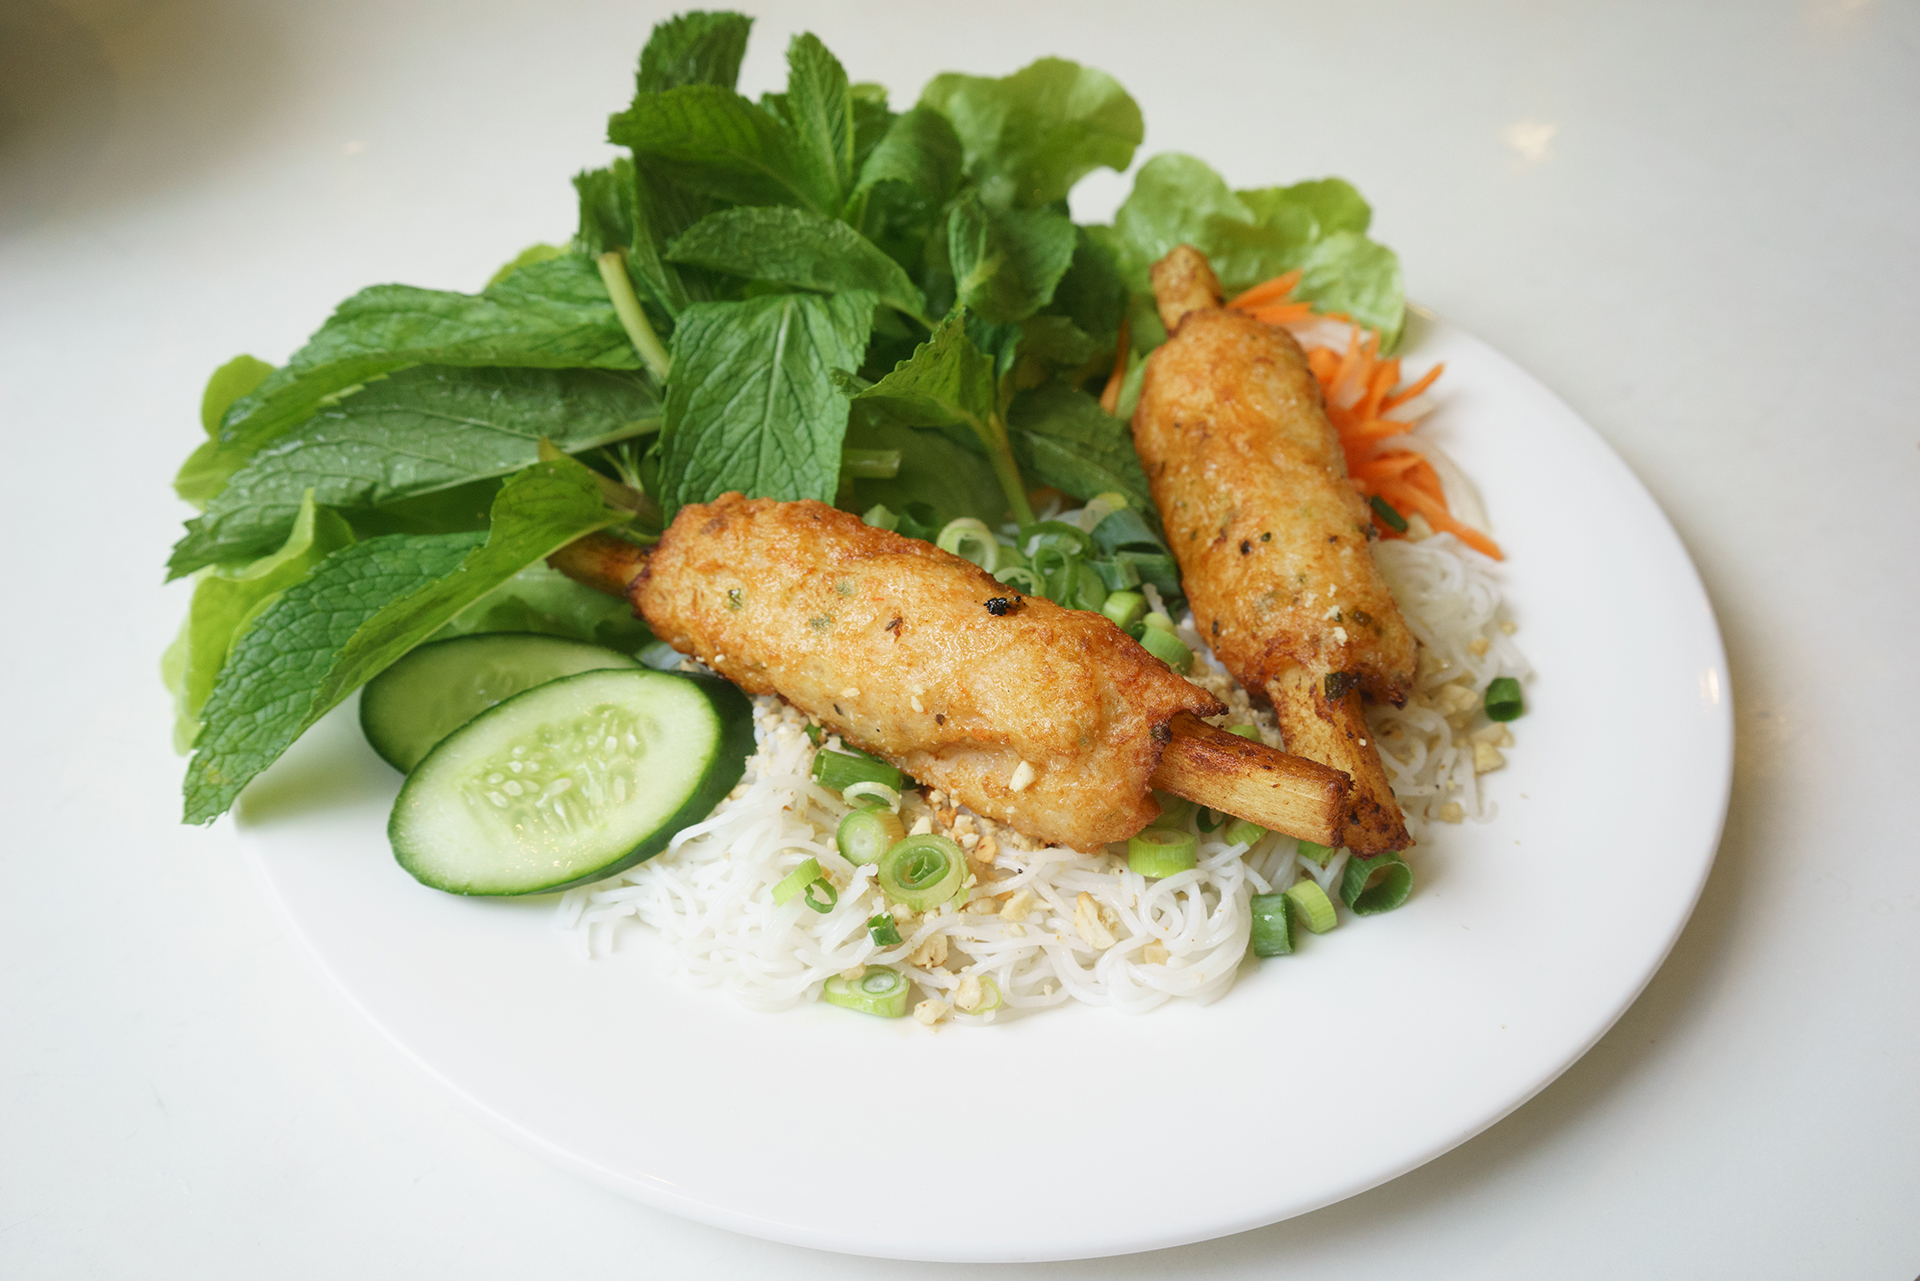 Sugar cane prawns with woven vermicelli ~ chao tom banh hoi